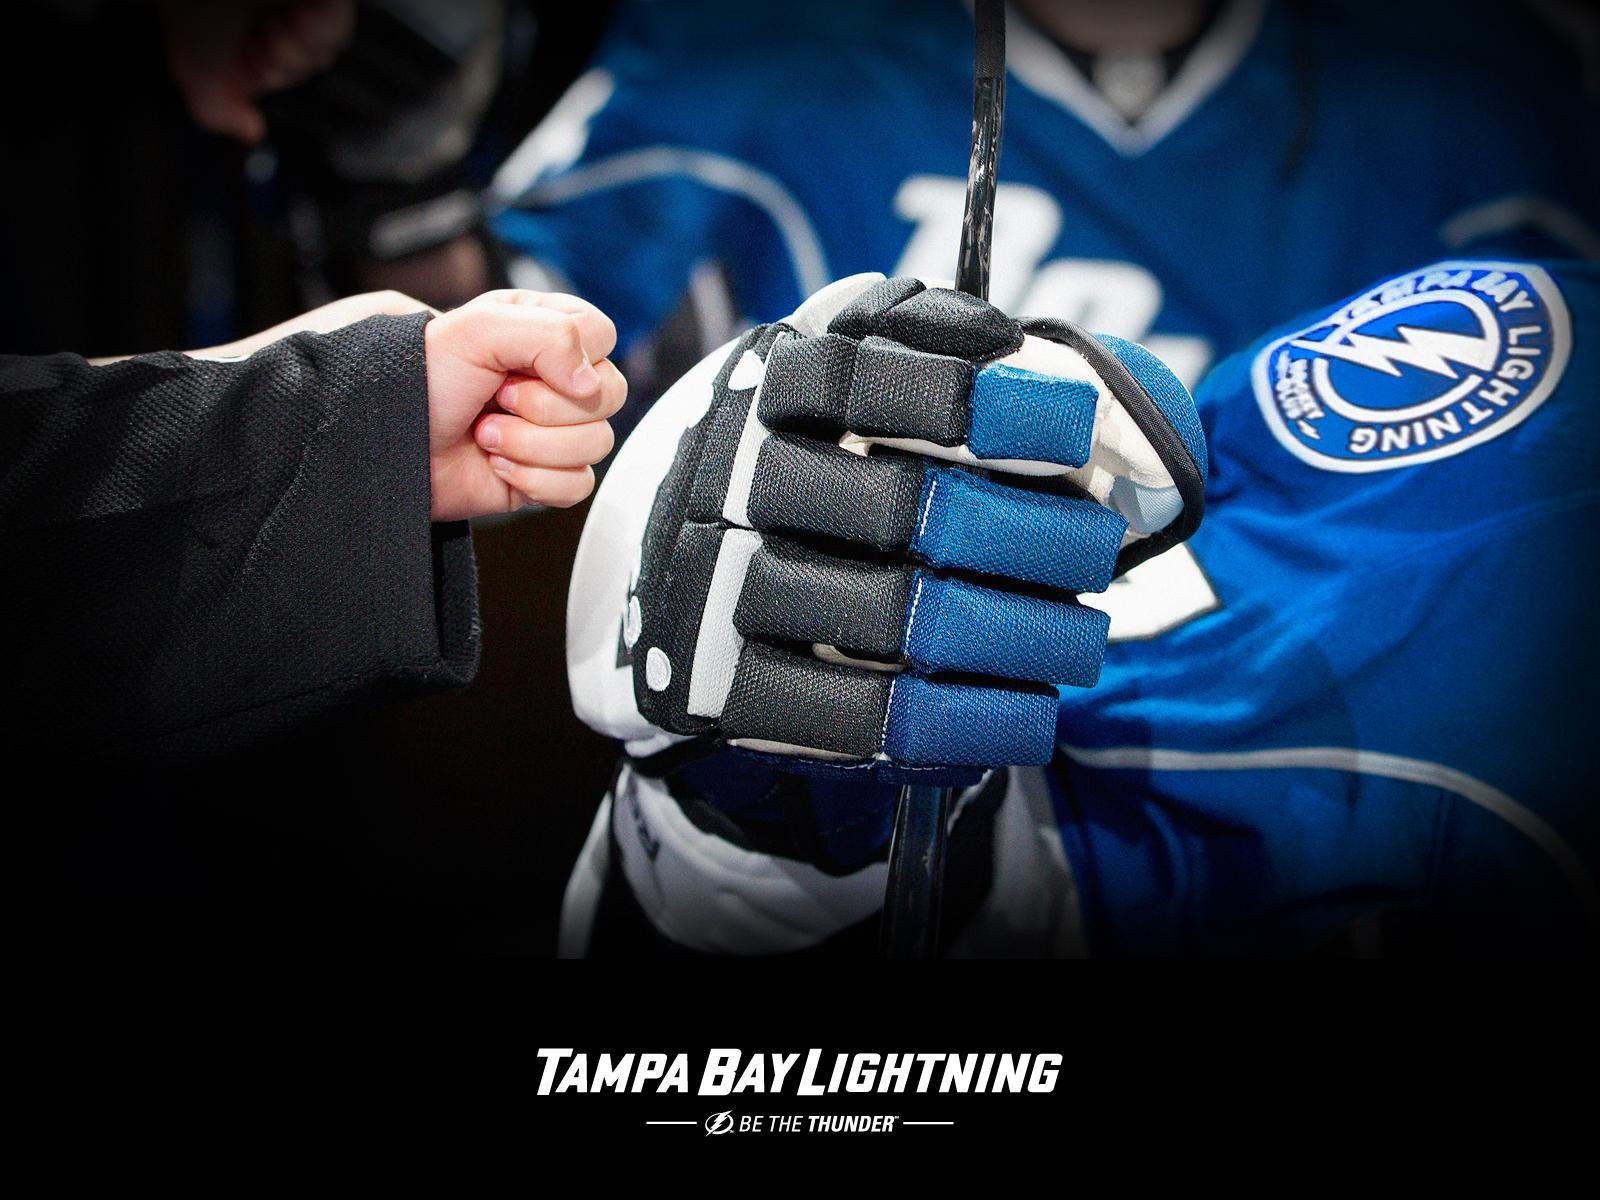 TAMPA BAY LIGHTNING nhl hockey 41 wallpaper background 1600x1200